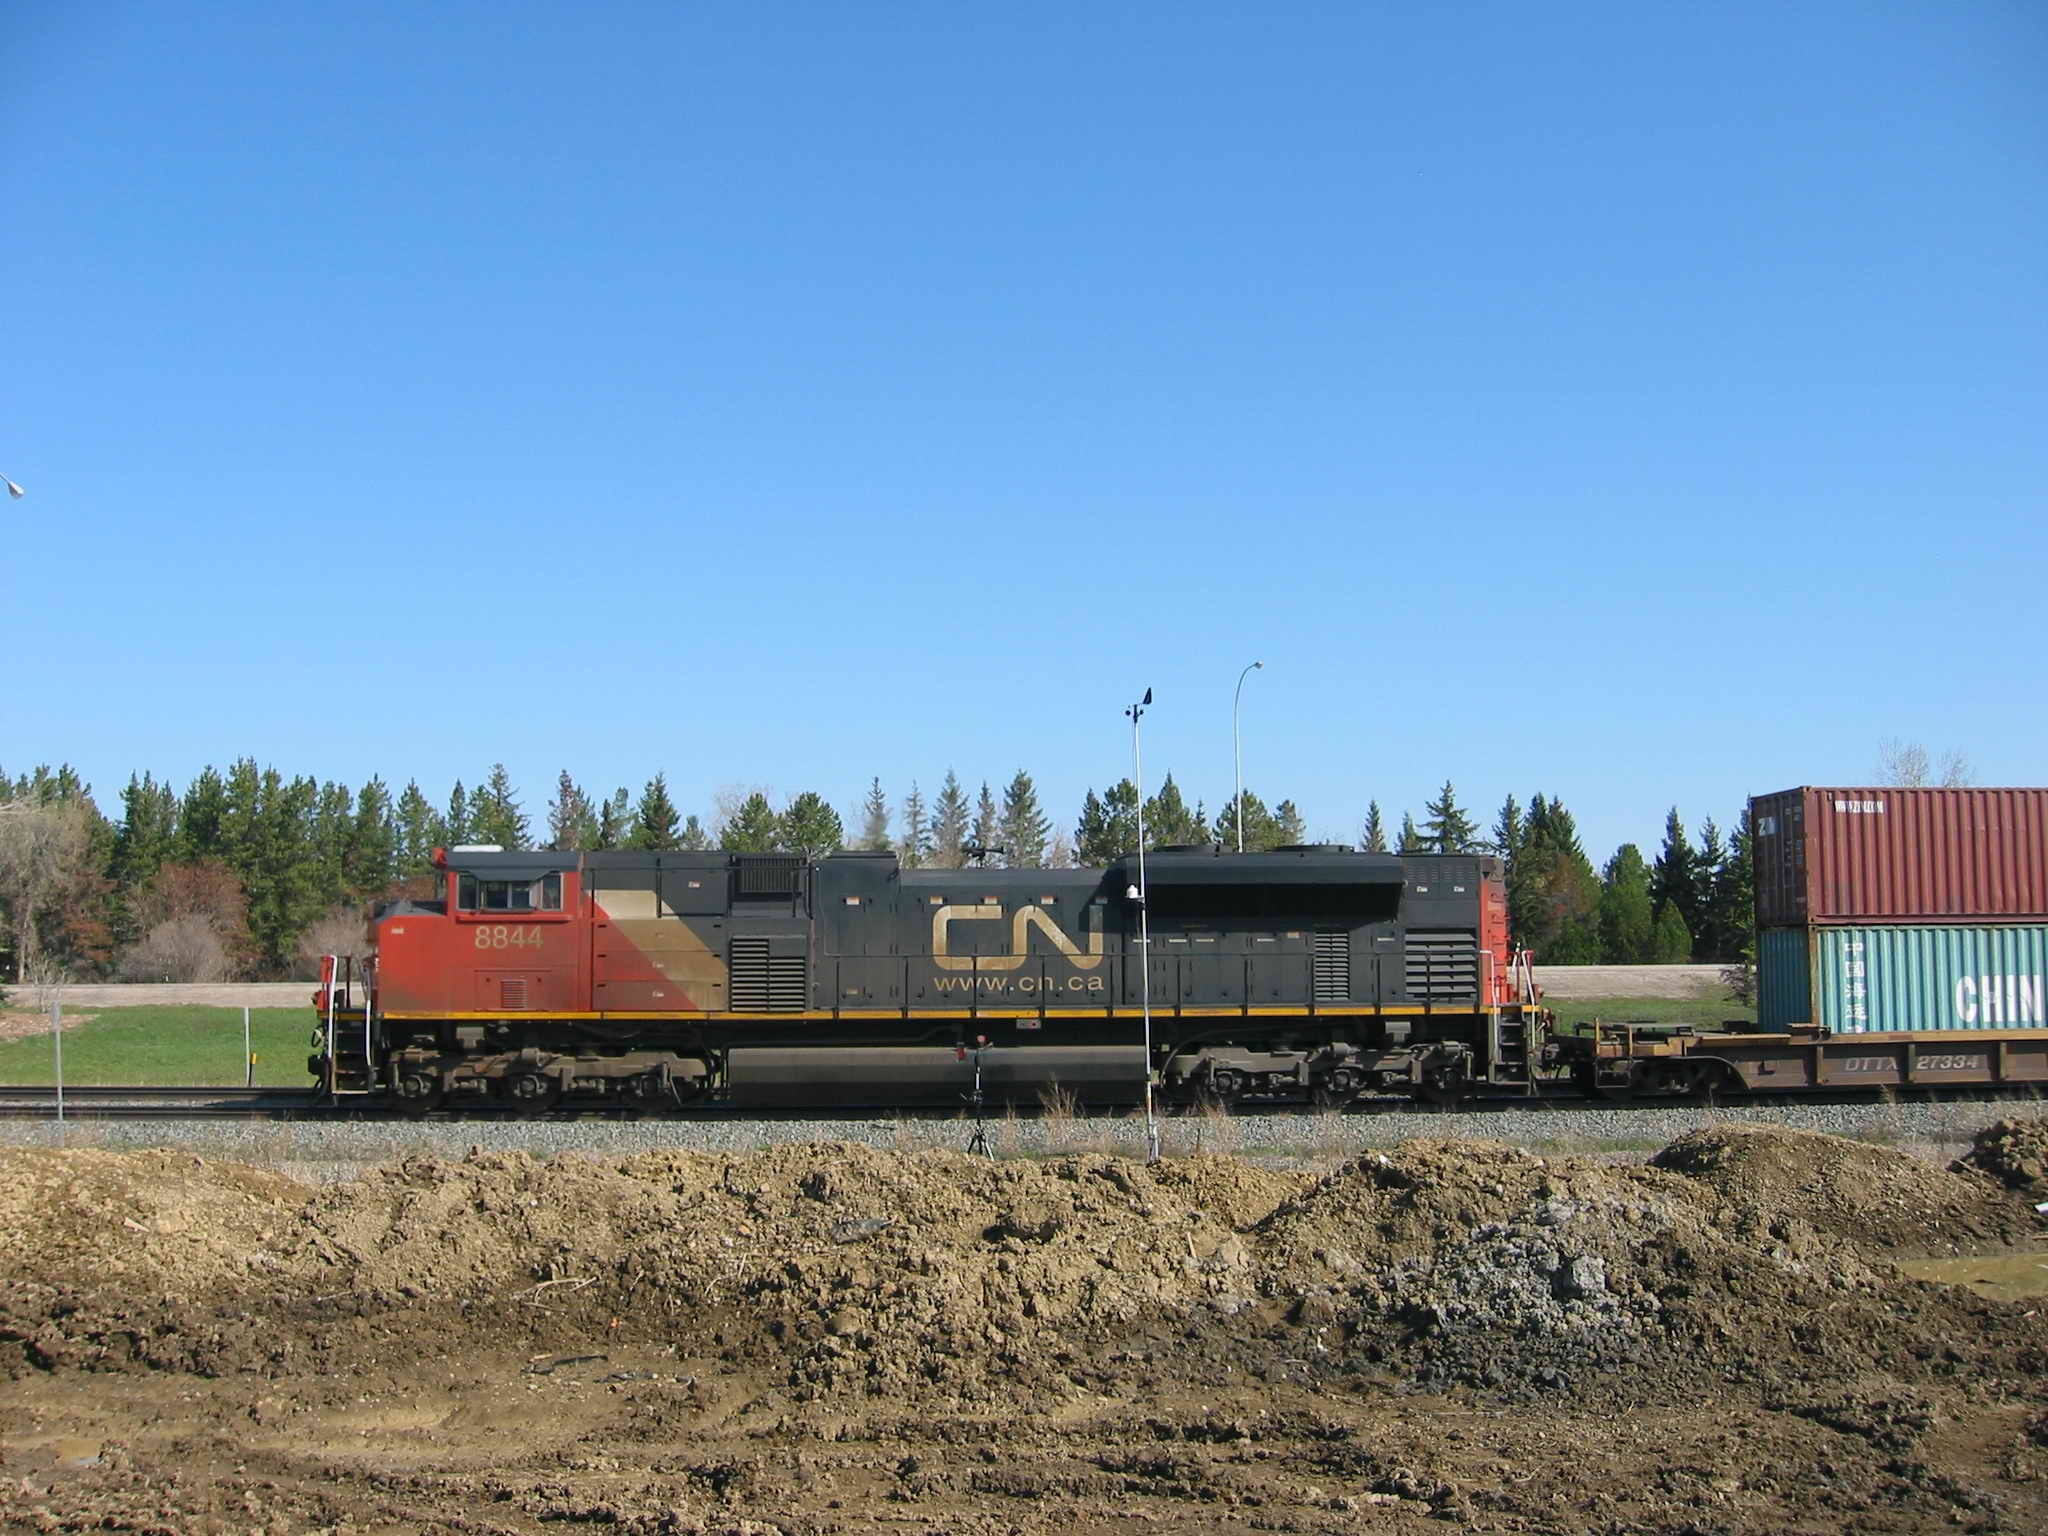 Freight Train With Noise, Vibration, and Weather Monitors